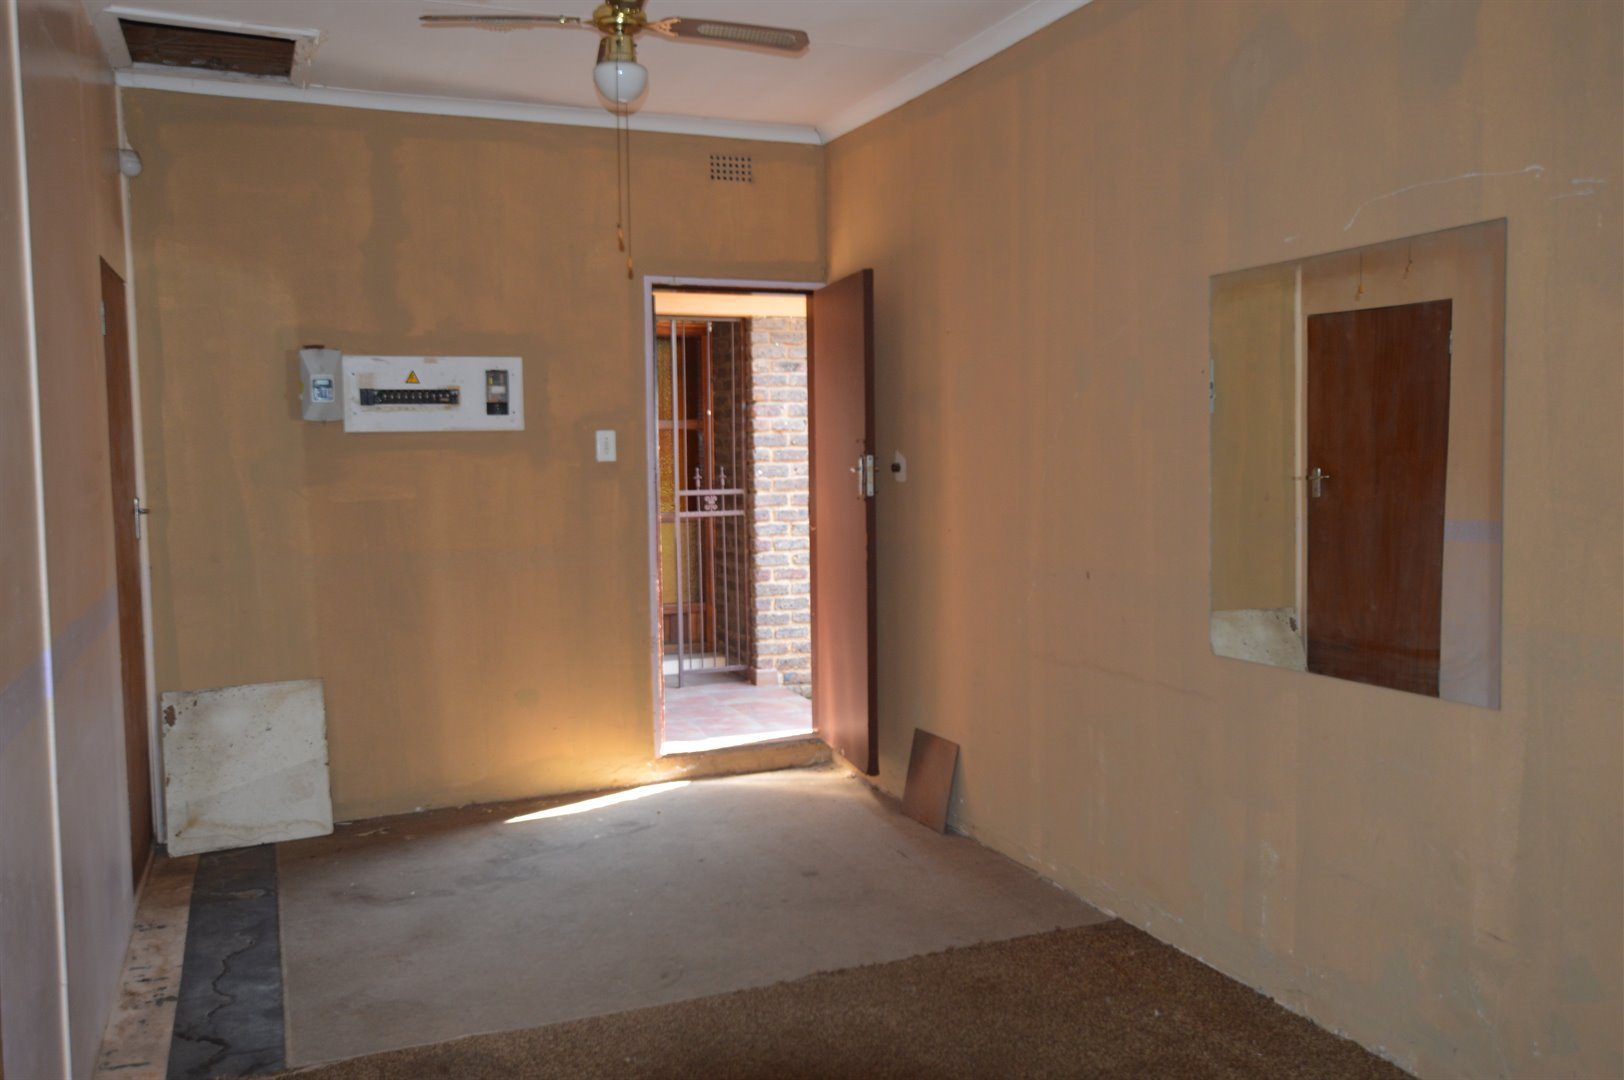 Vanderbijlpark Se 2 property for sale. Ref No: 13623209. Picture no 42